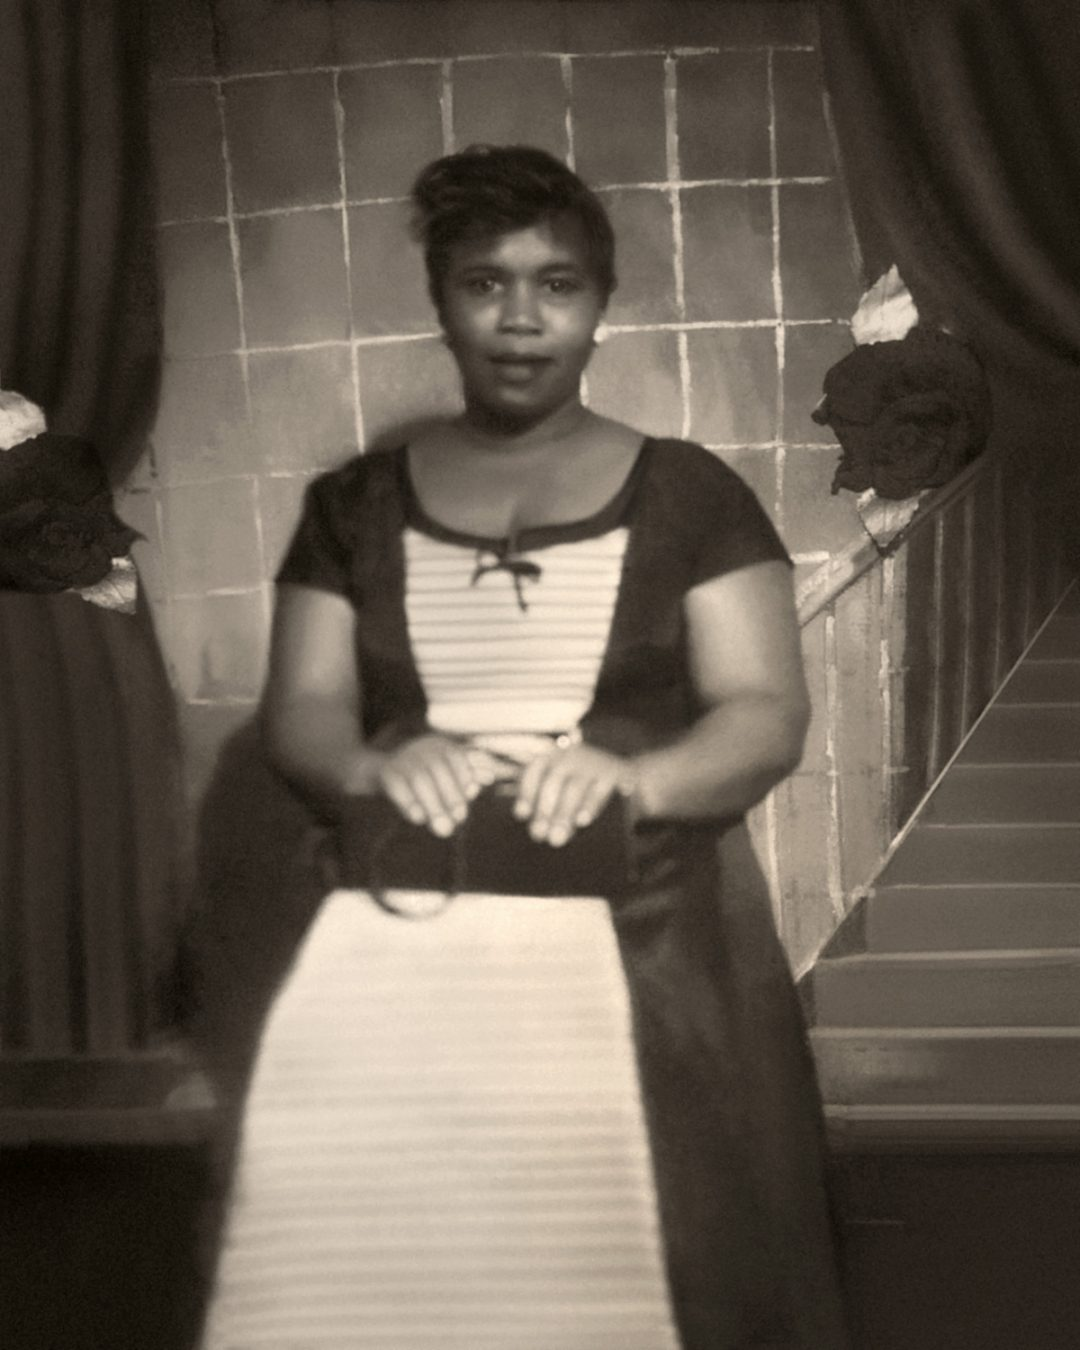 Mildred Evelyn Adamson, b. Charleston, SC, d. Baltimore, MD, Contributed by Aaron Mitchell